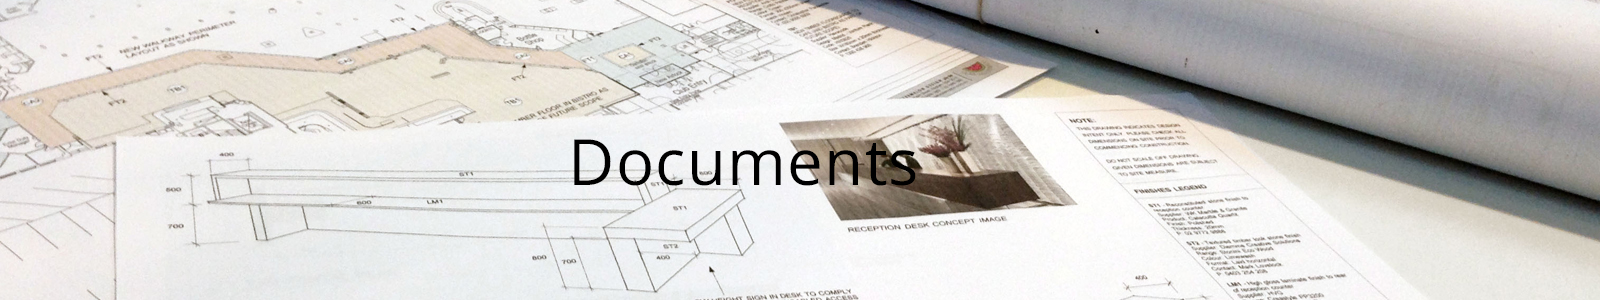 Documents and certification